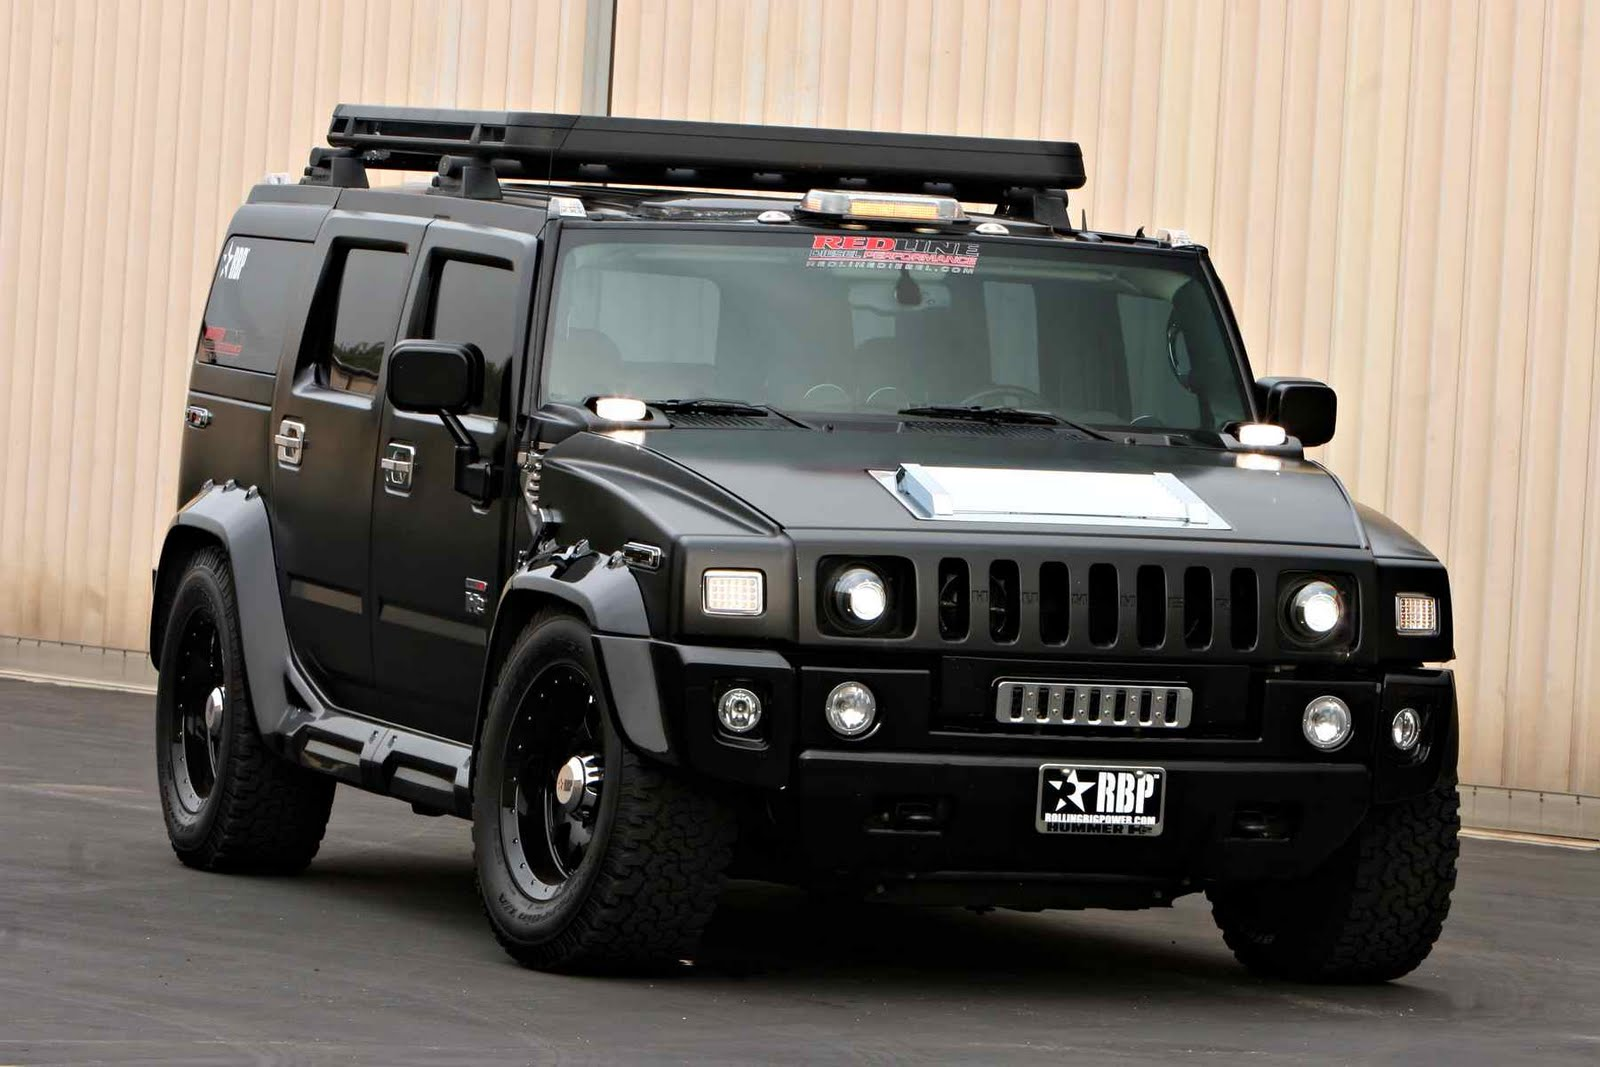 Car 7 hummer h2 hummer h2 2012 select model clearance prices 2012 car dealer dealership car invoice pricescar price quotescar invoice dealercar pricescar invoice vanachro Image collections